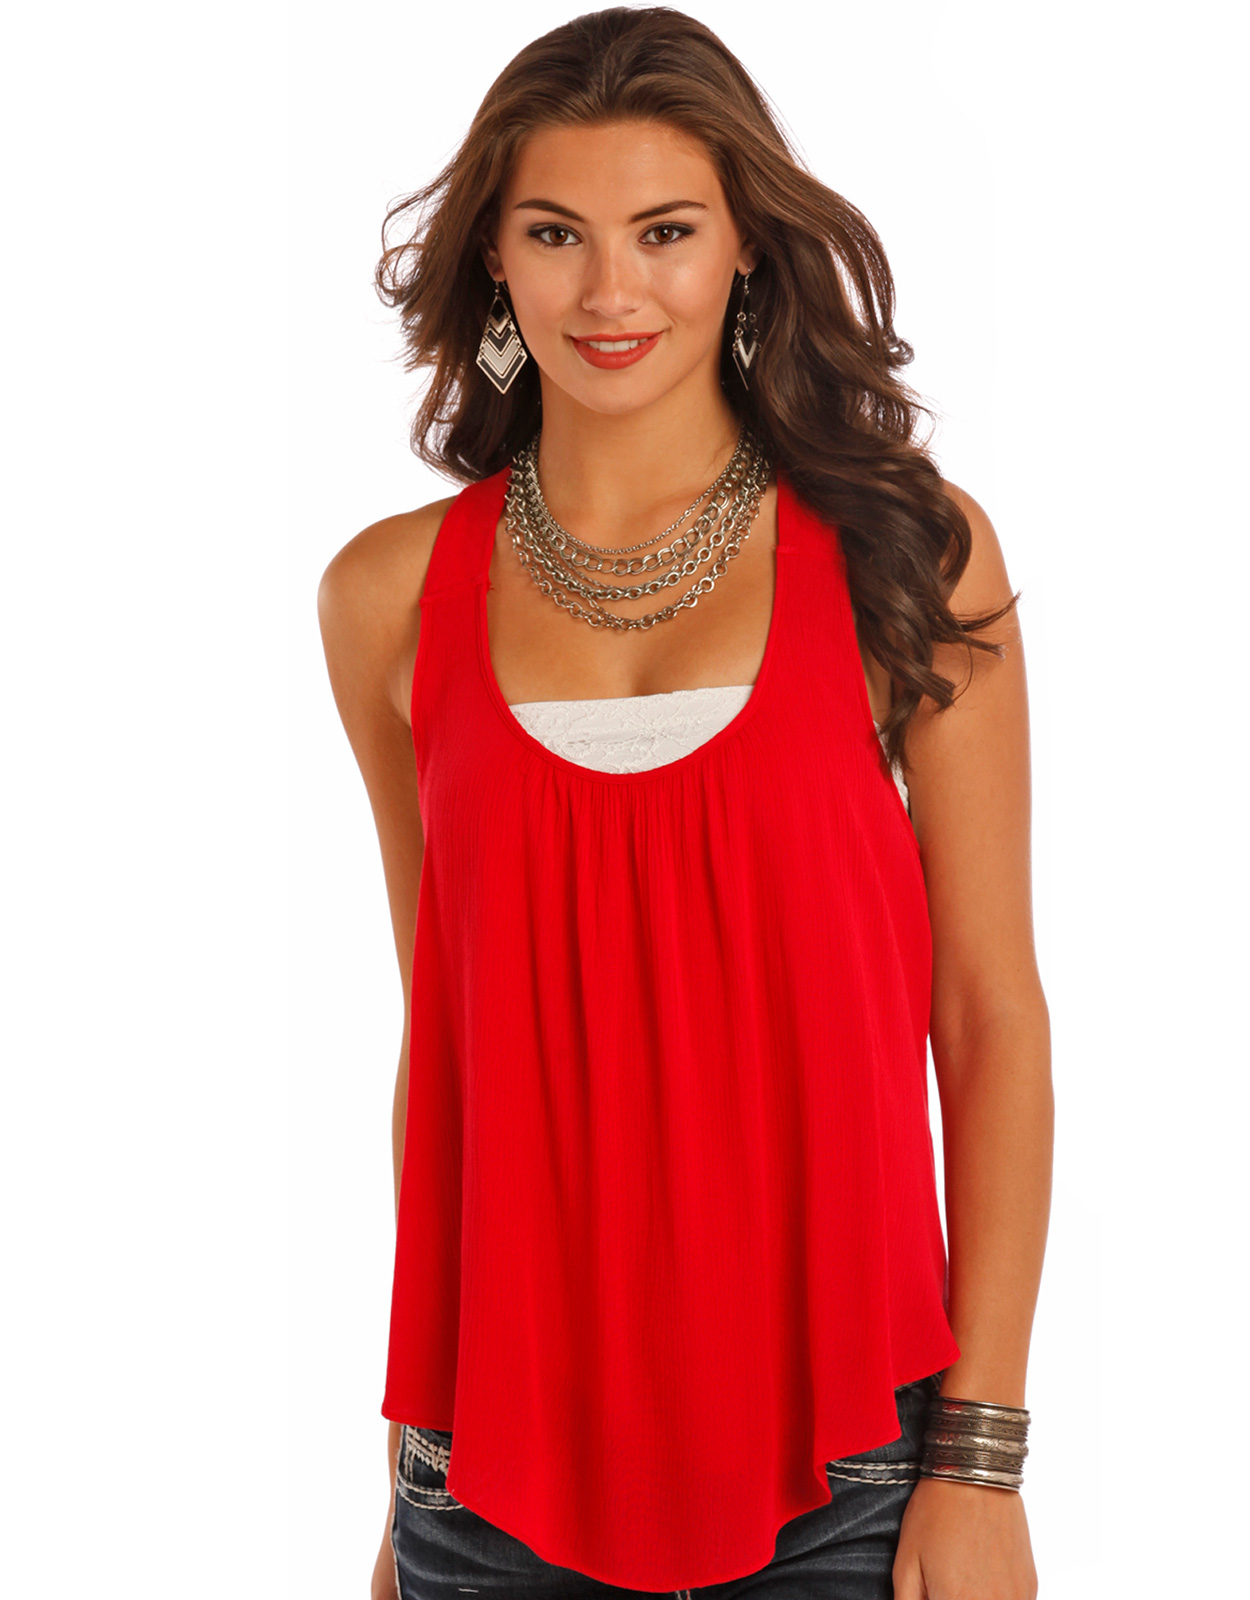 Panhandle Women's Sleeveless Solid Tank Top - Red